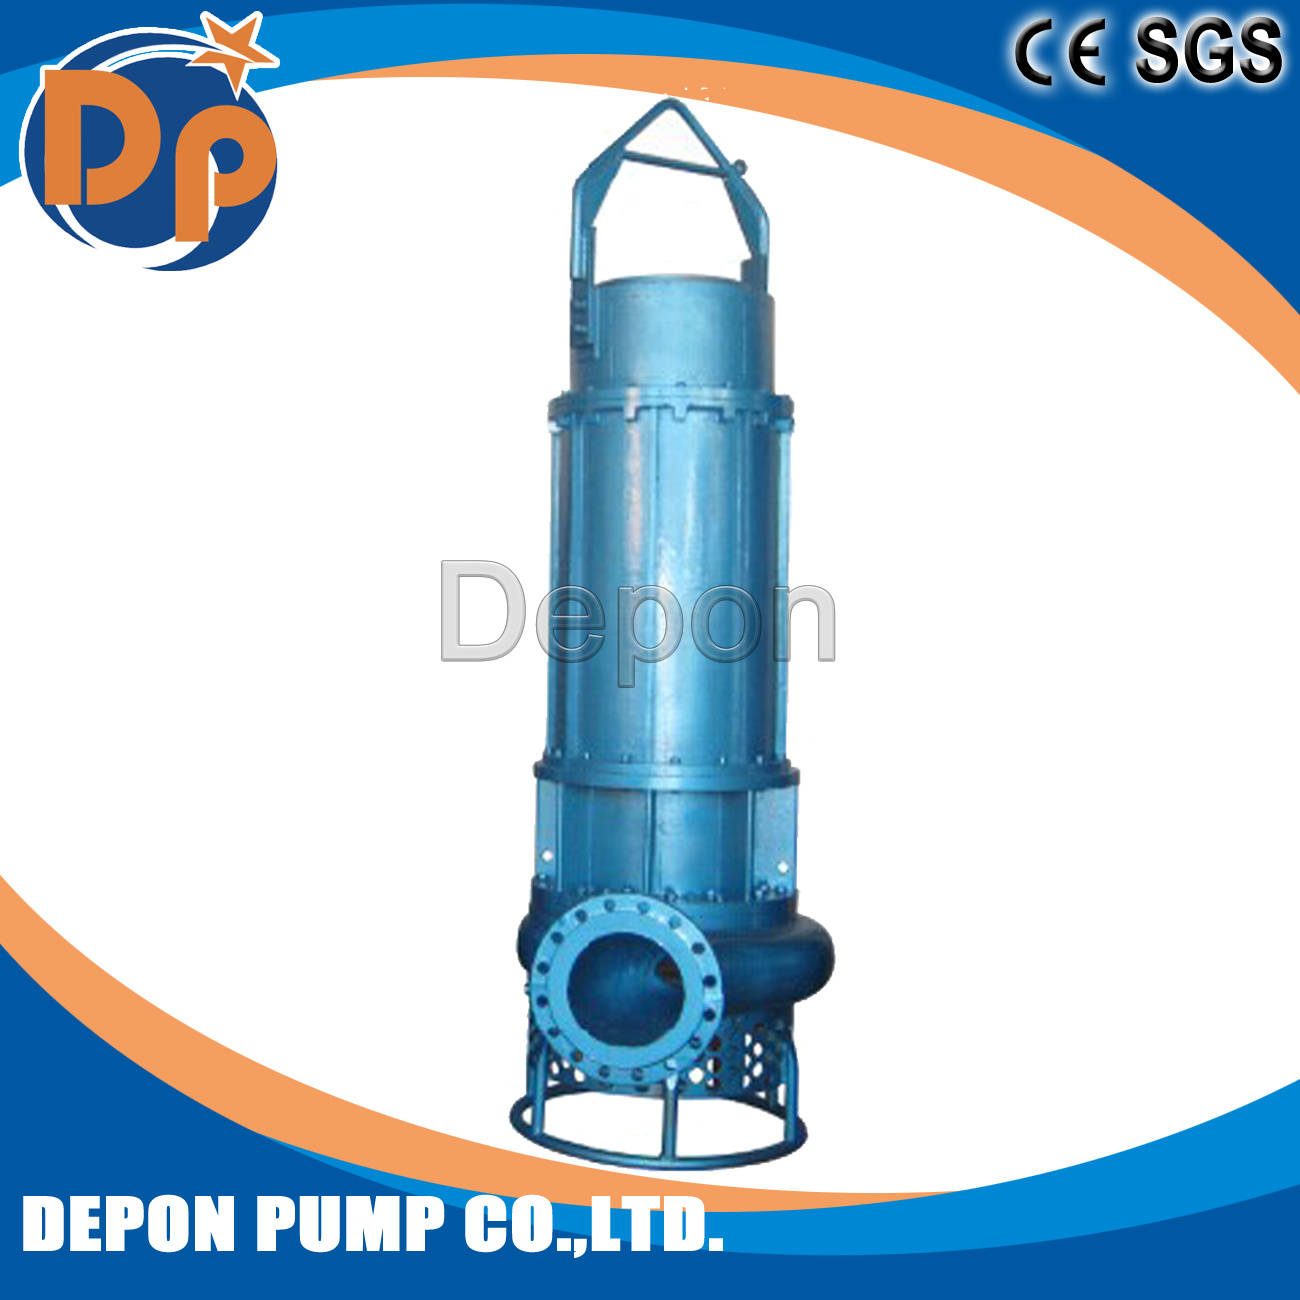 Solid Slurry Pump Closed Impeller for Industry Wastewater